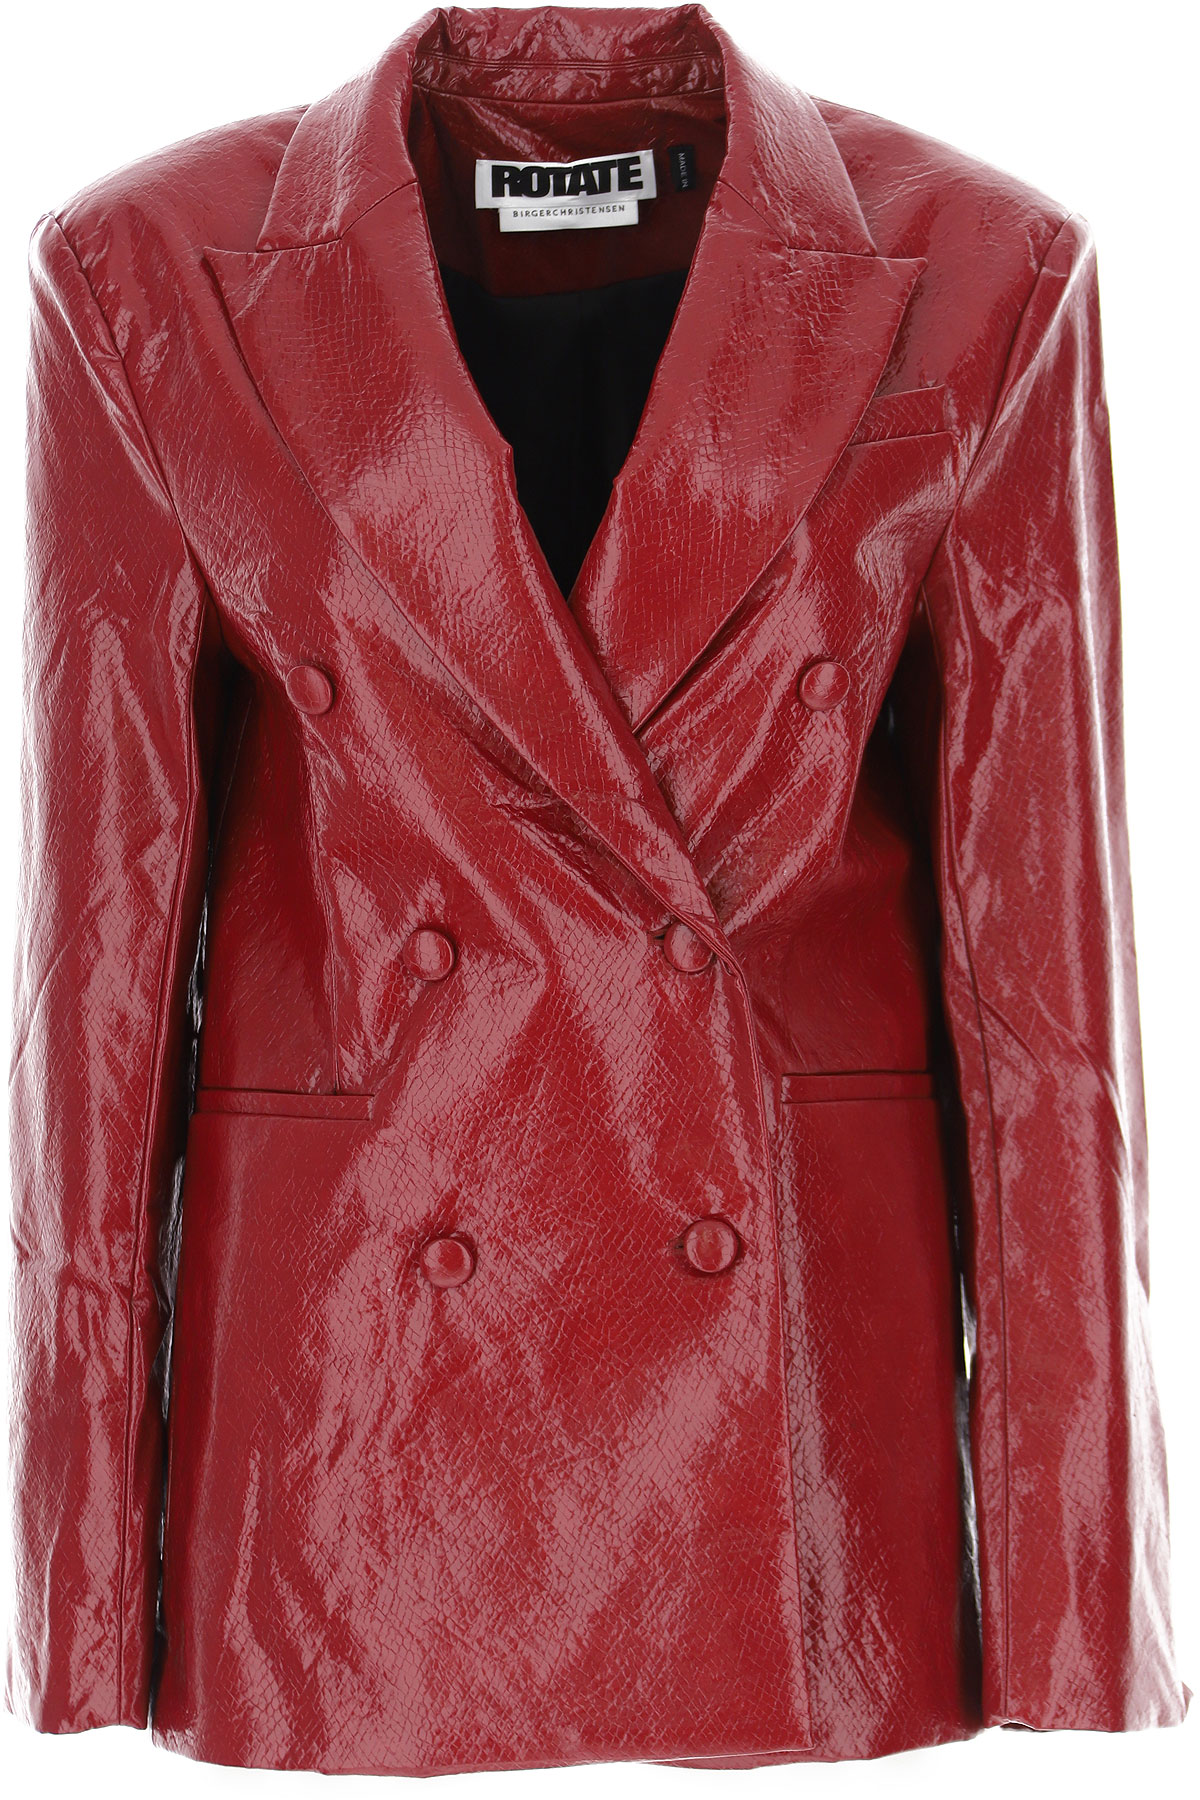 Rotate Jacket For Women, Red, Polyurethane, 2021, 6